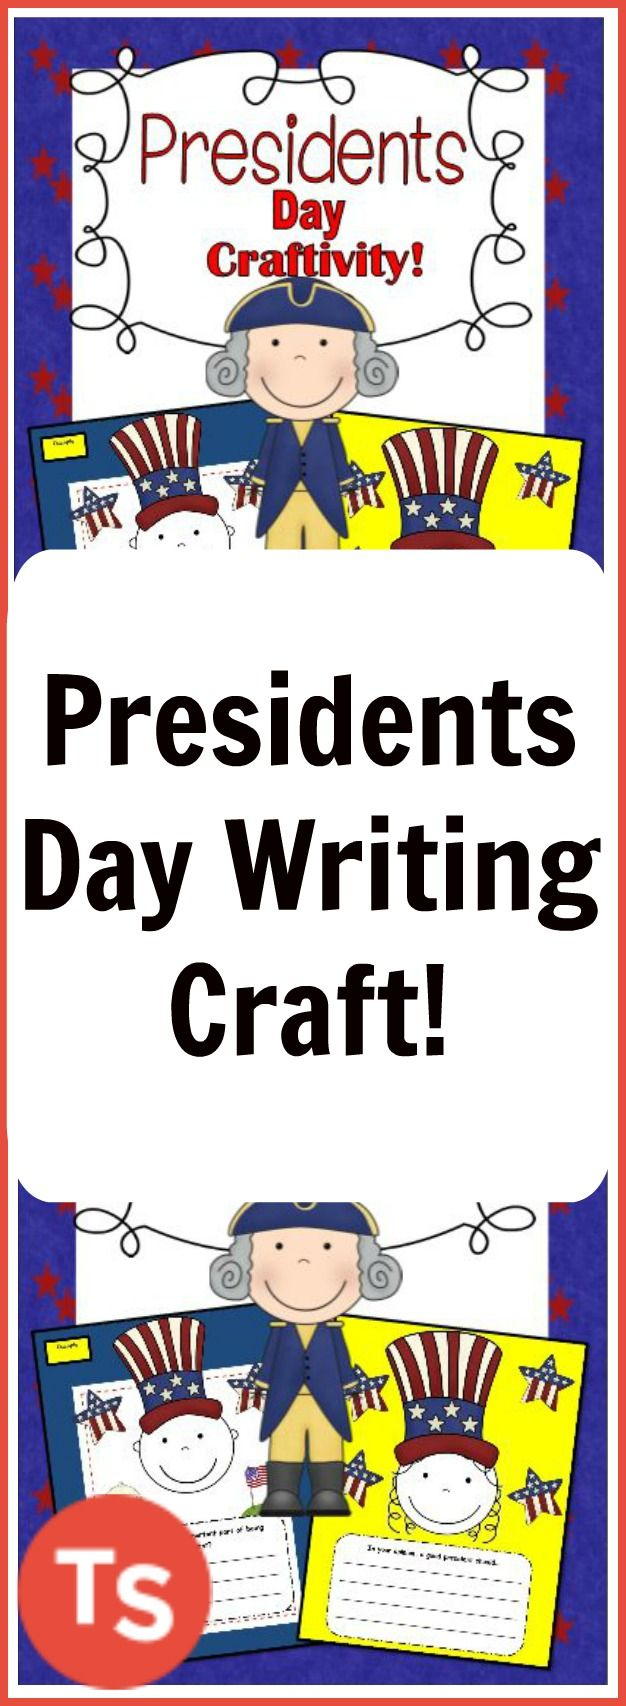 Have your students choose between two open ended writing prompts that can be glued to the template page or to a piece of construction paper along with the face of a boy or girl and their patriotic hat! #presidentsday